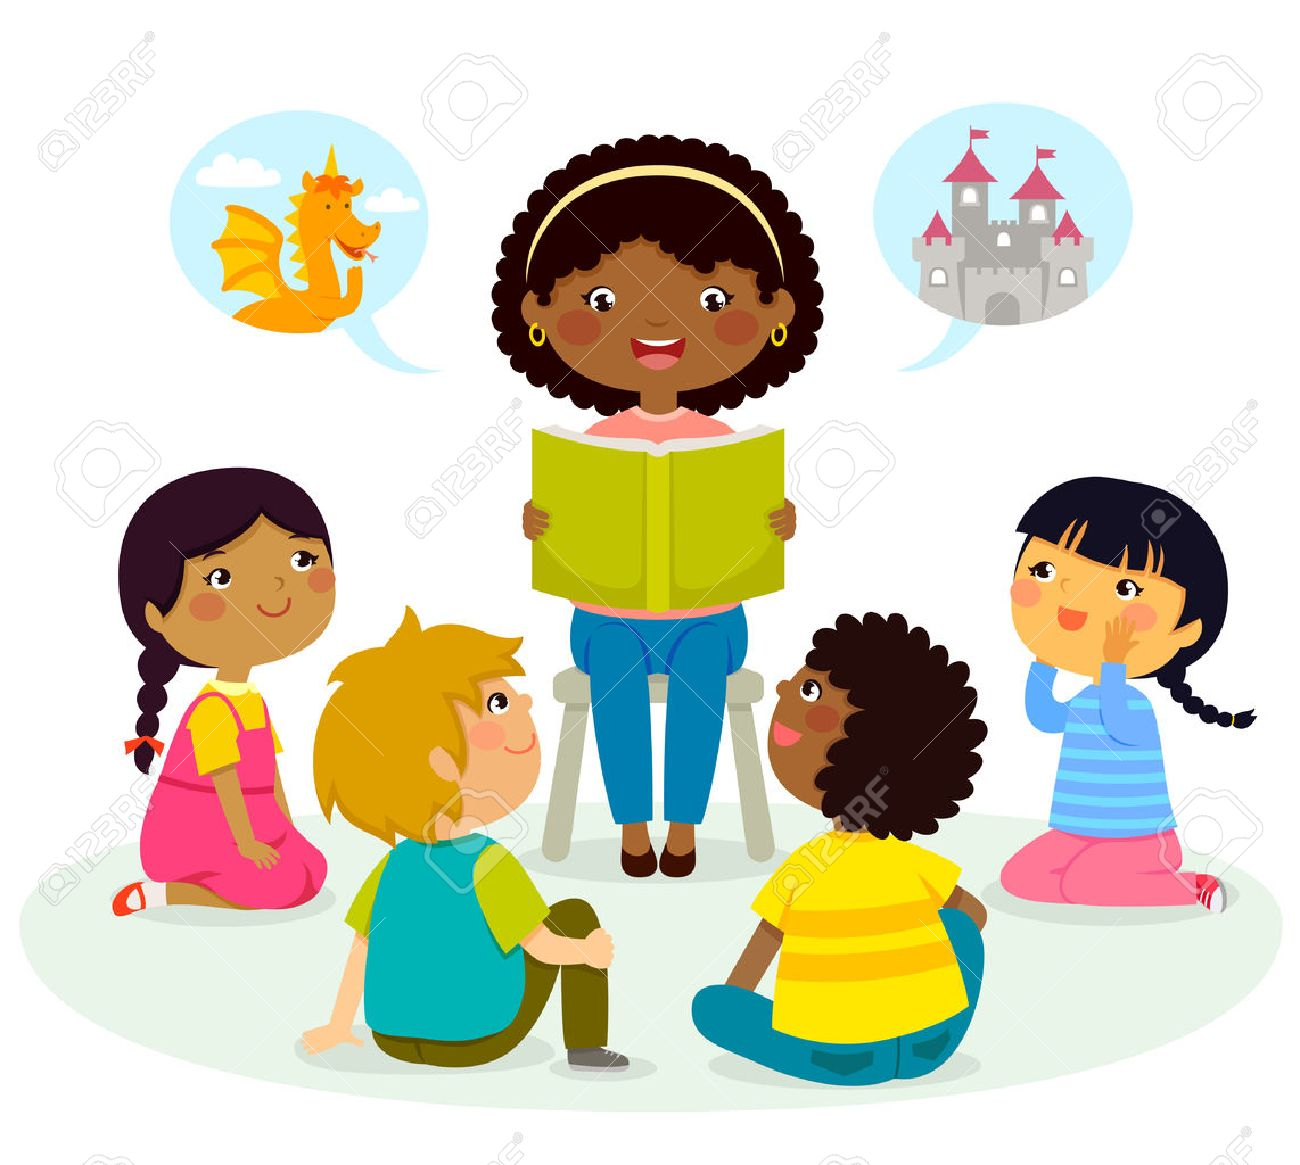 black teacher reading a book to kids of different ethnicities - 70226557